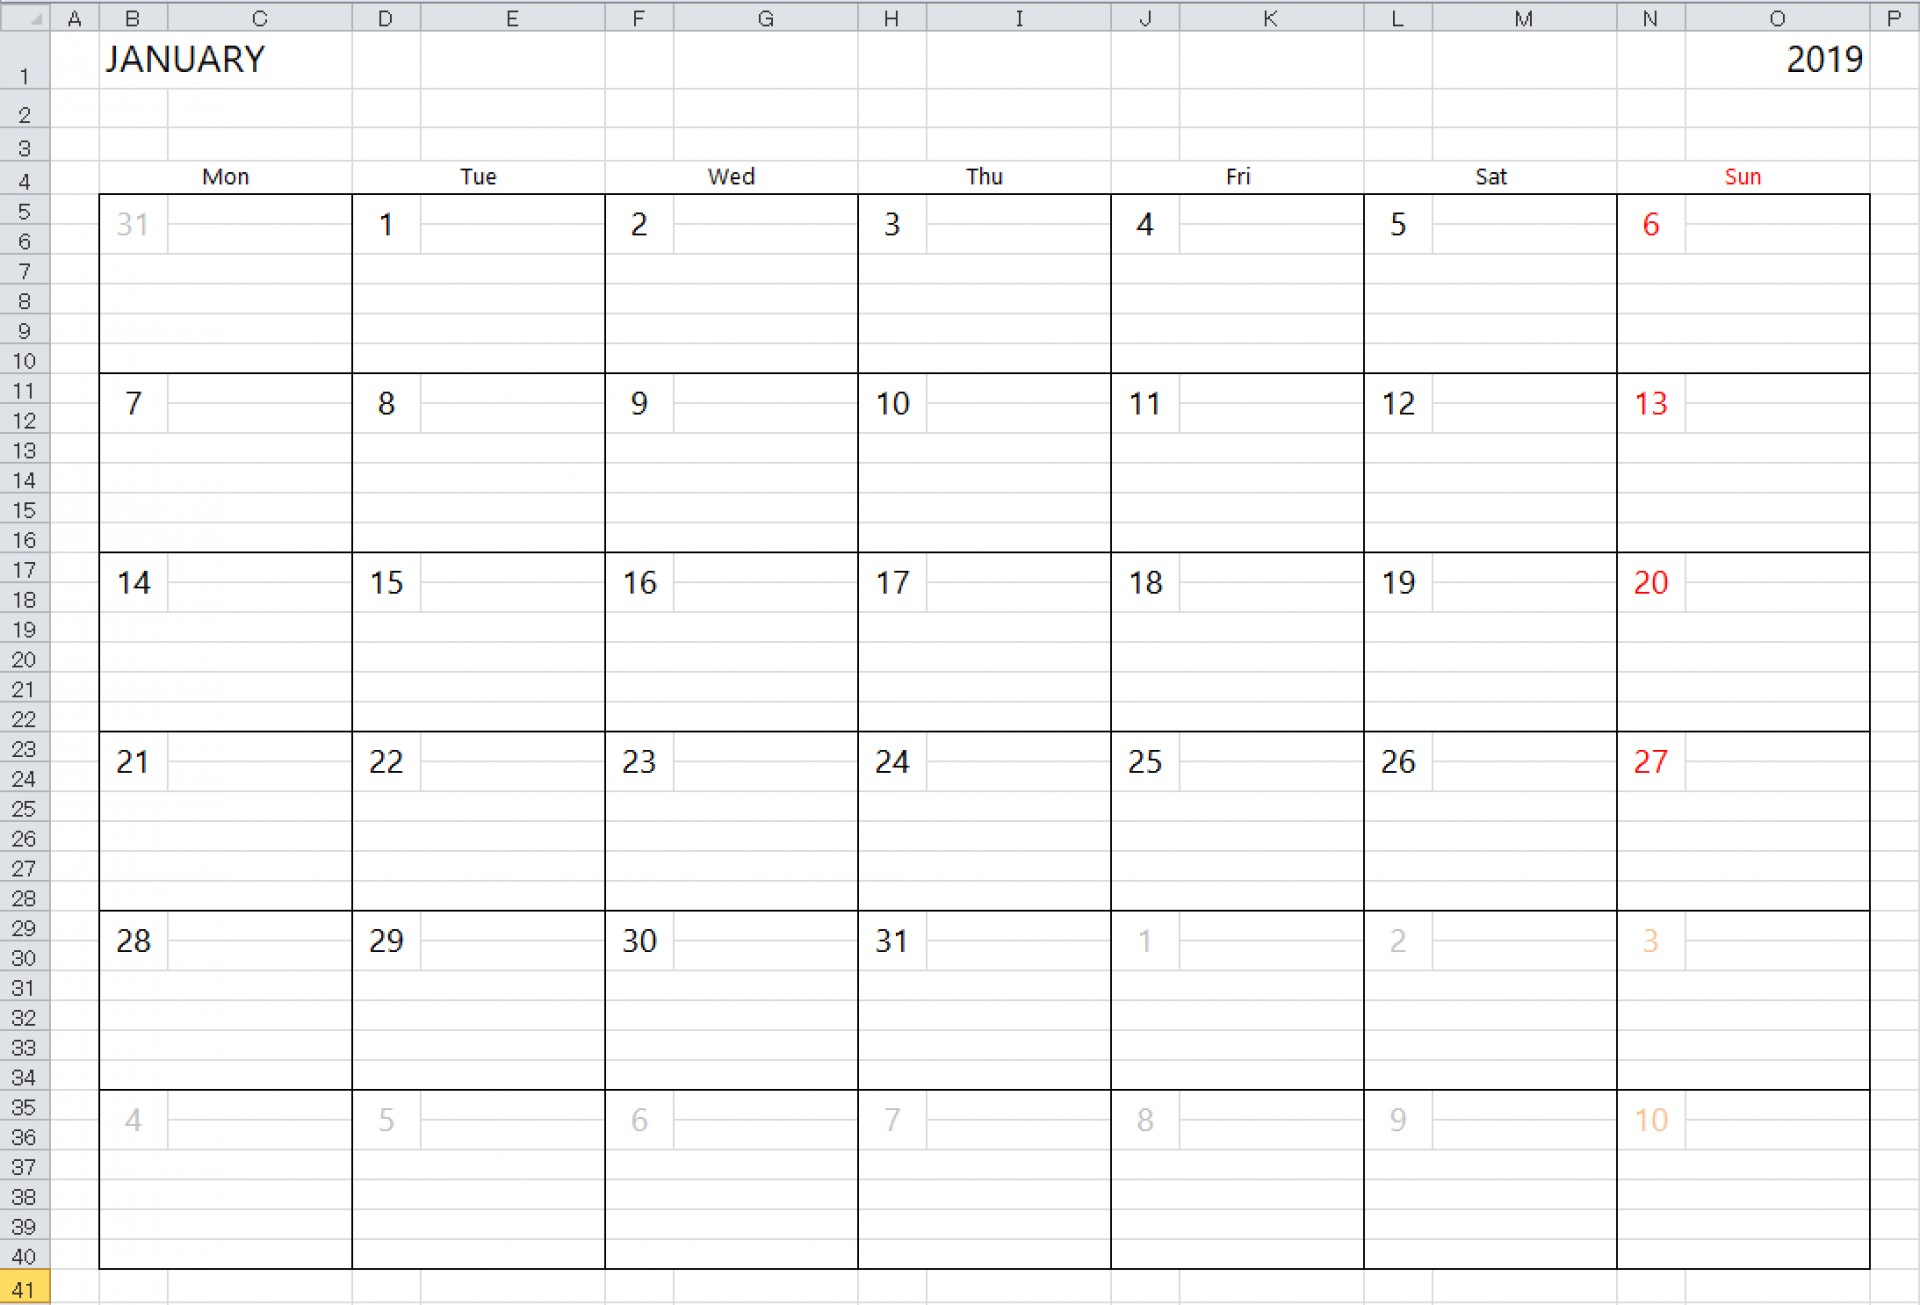 033 Img Excelcalendar 03 En Excel Weekly Calendar Template in Monthly Calendar With Time Slots 2020